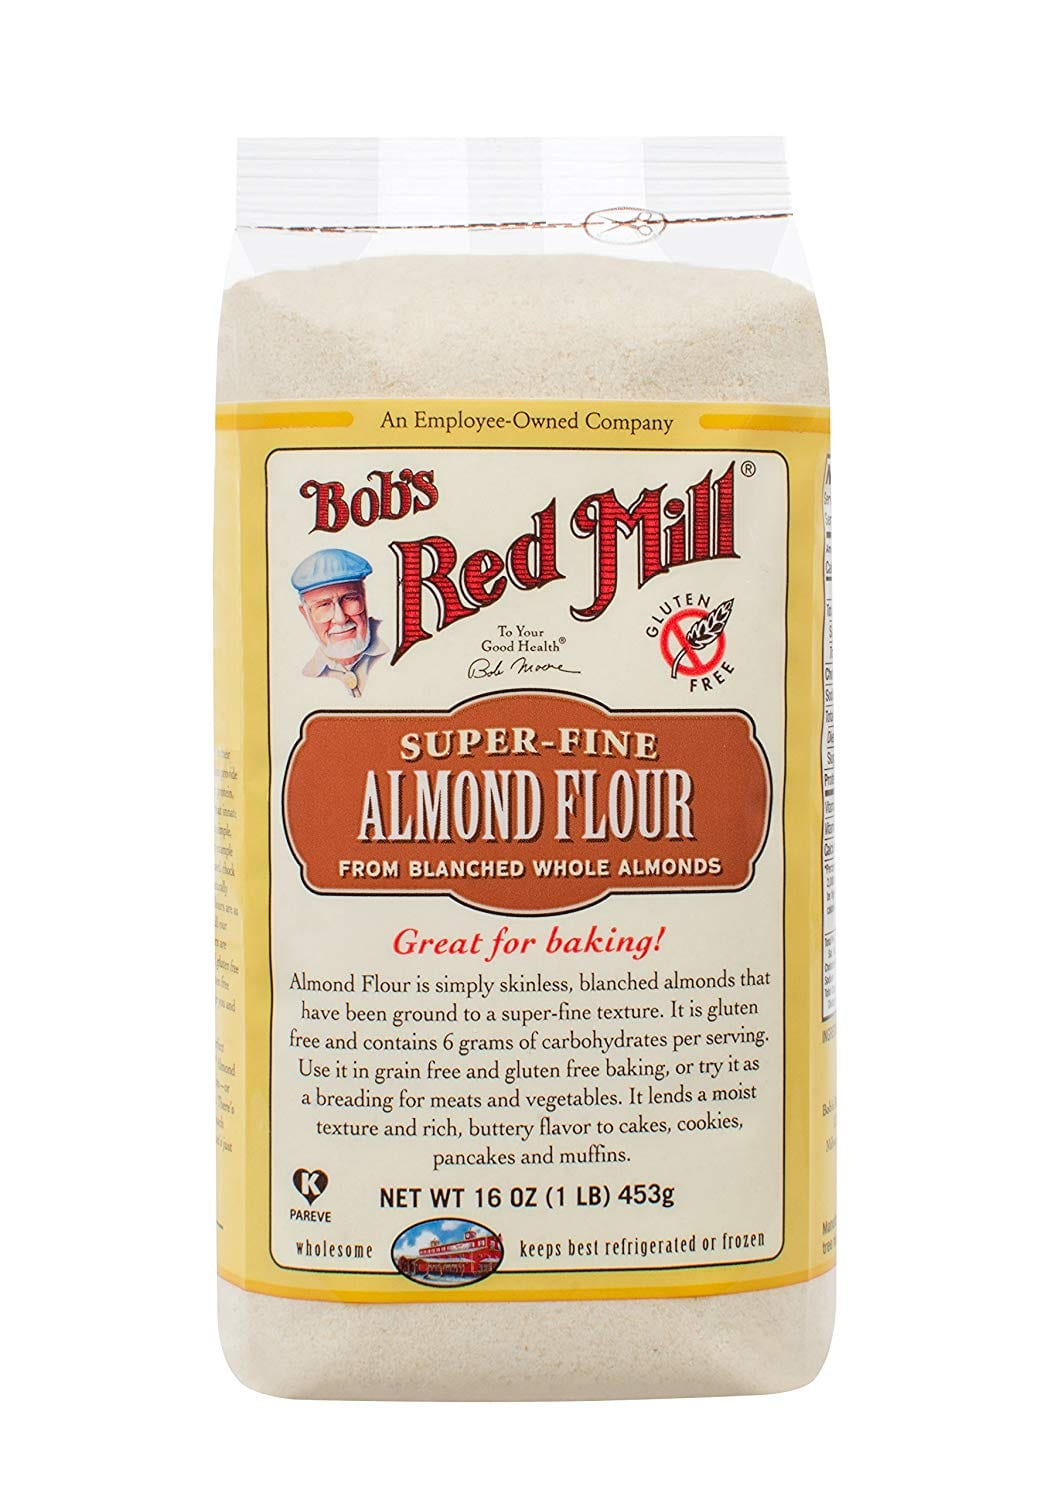 Bobs red mill super fine almond flour